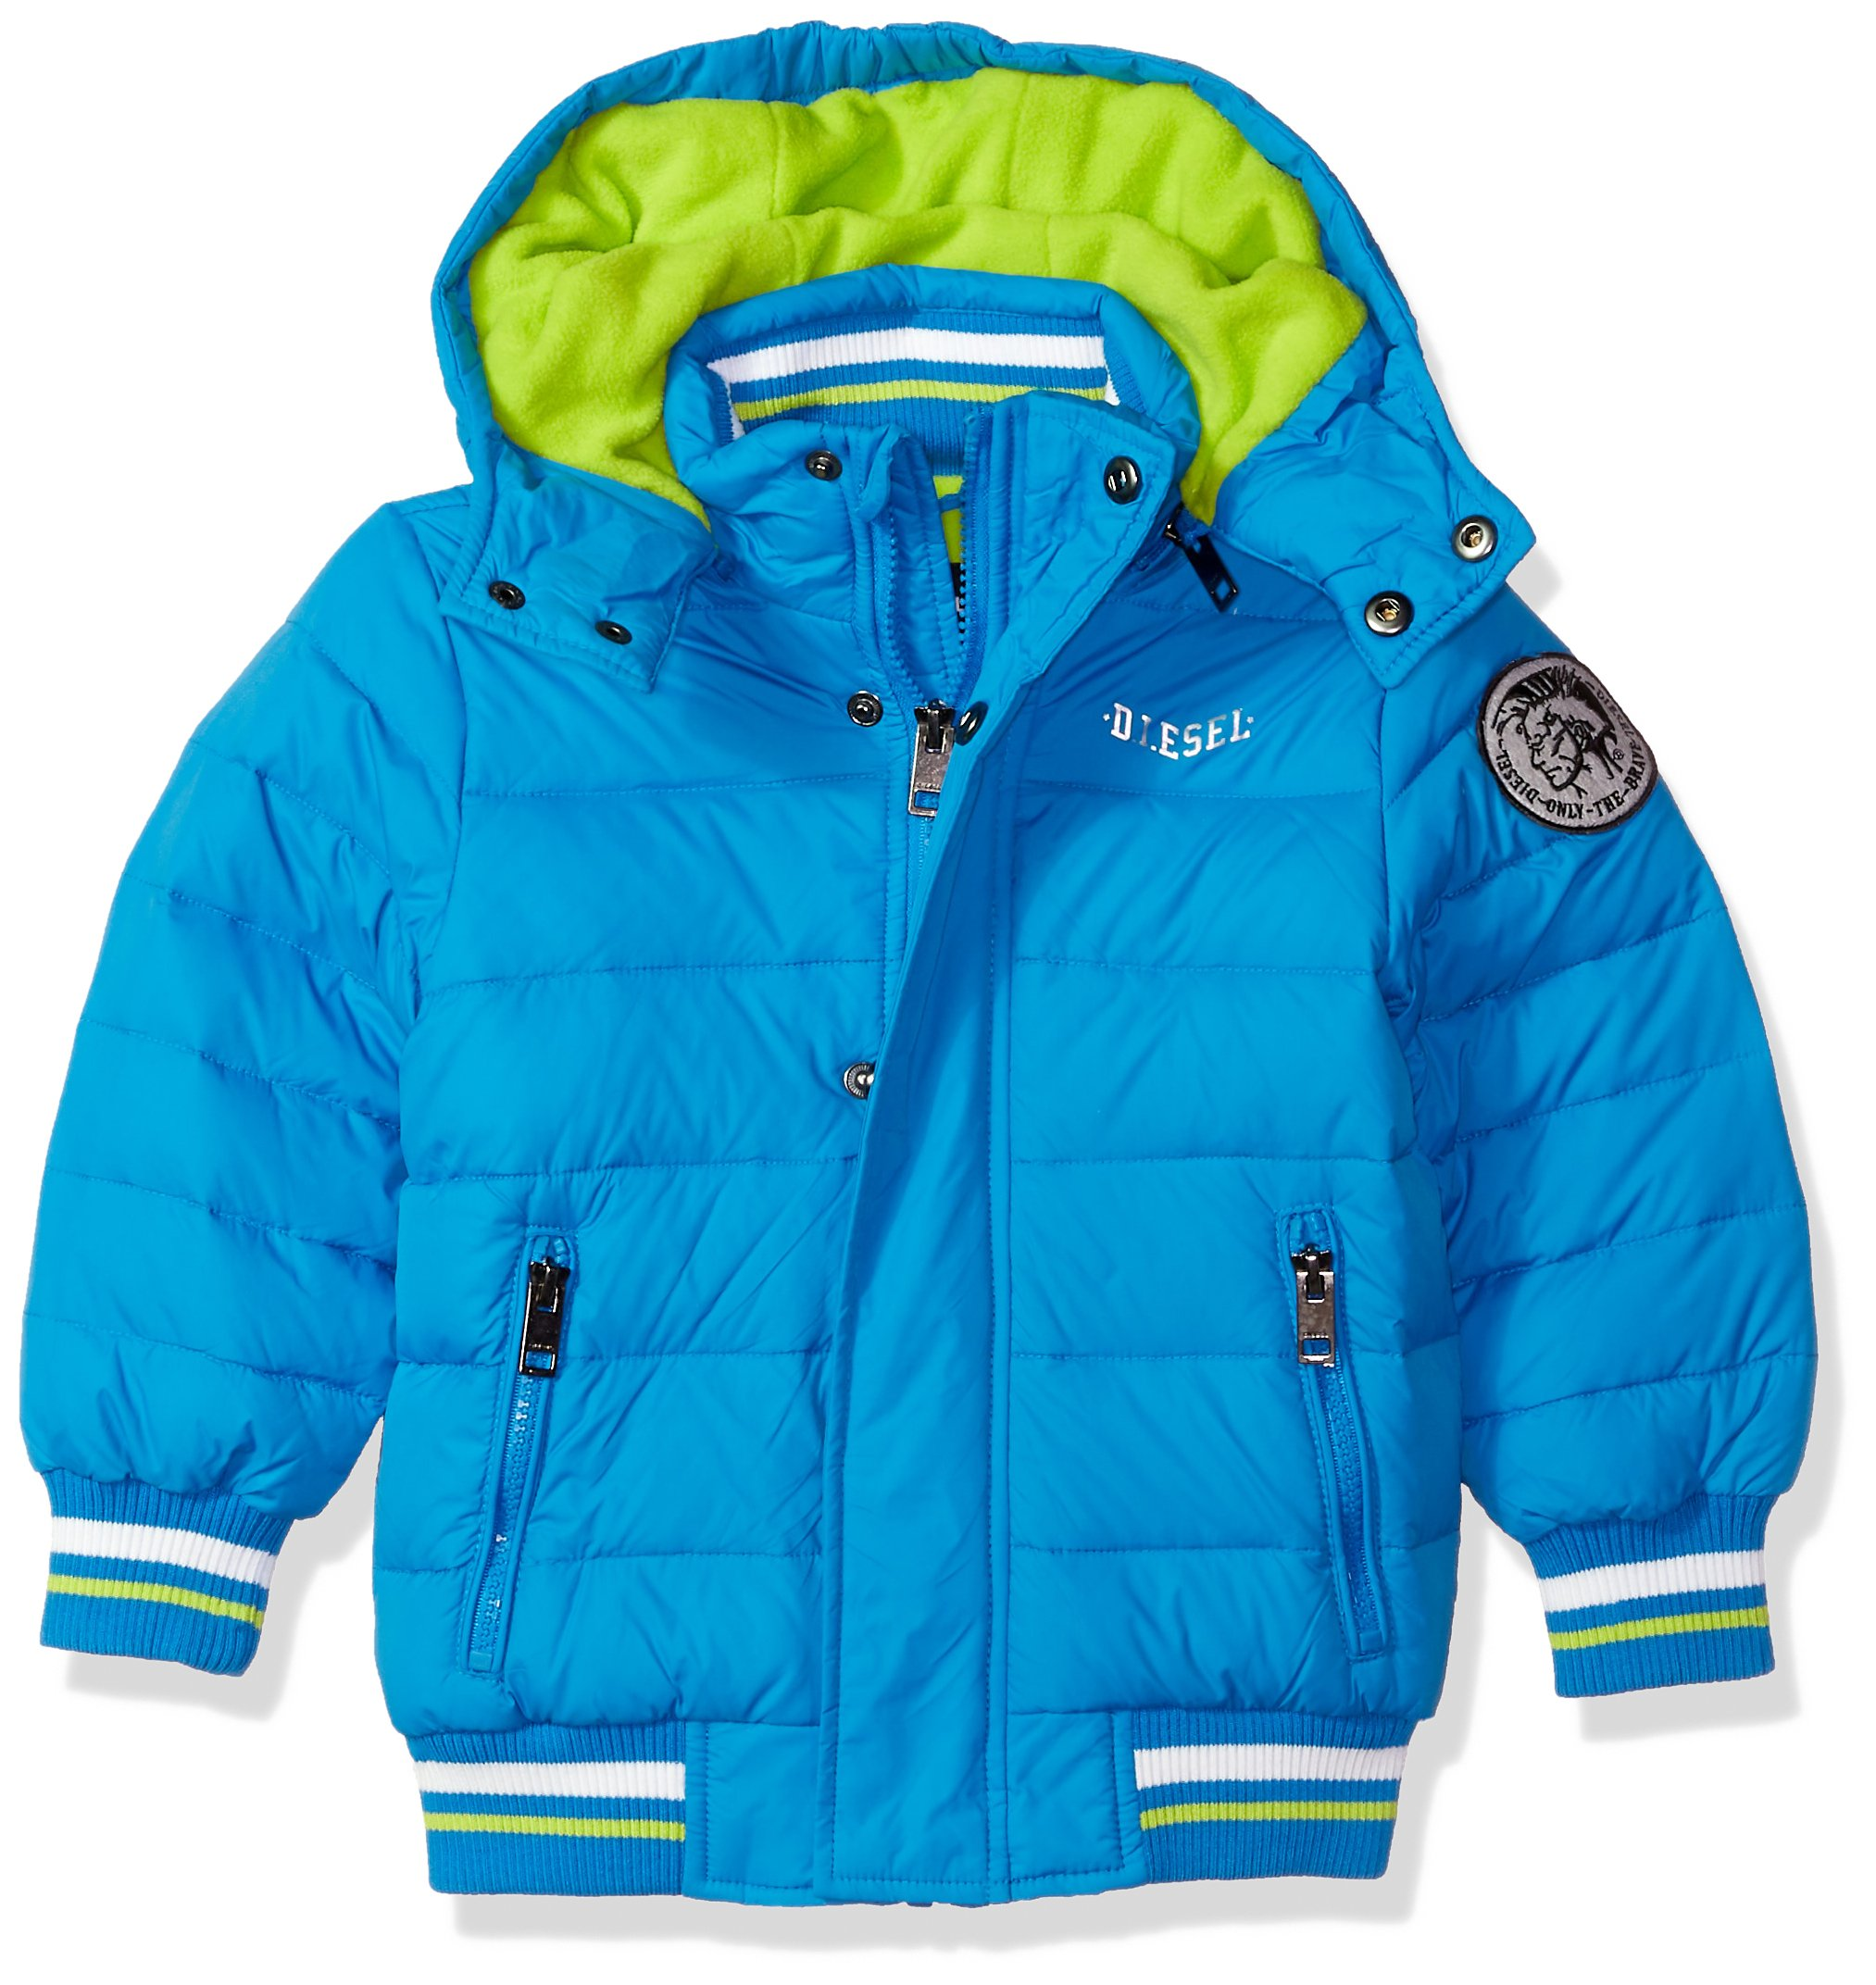 Diesel Toddler Boys' Outerwear Jacket (More Styles Available), Bubble/Blue, 4T by Diesel (Image #1)